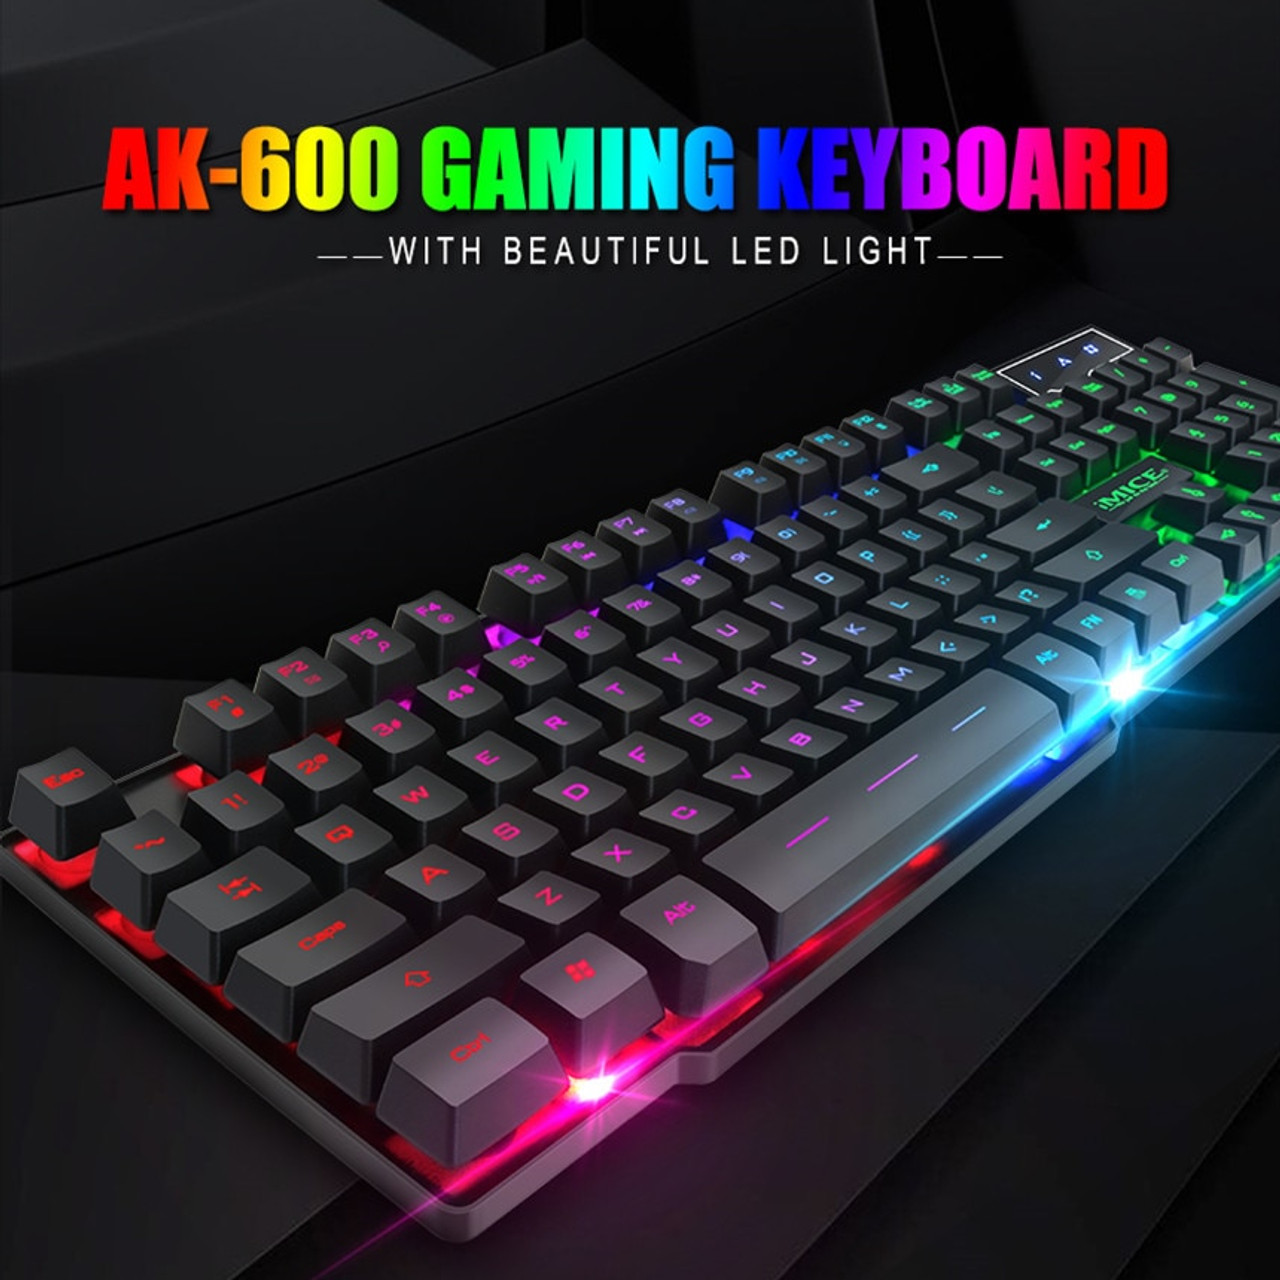 a8661f79f95 ... Wired Gaming Keyboard Mechanical Feeling Backlit Keyboards USB 104  Keycaps Russian Keyboard Waterproof Computer Game Keyboards ...